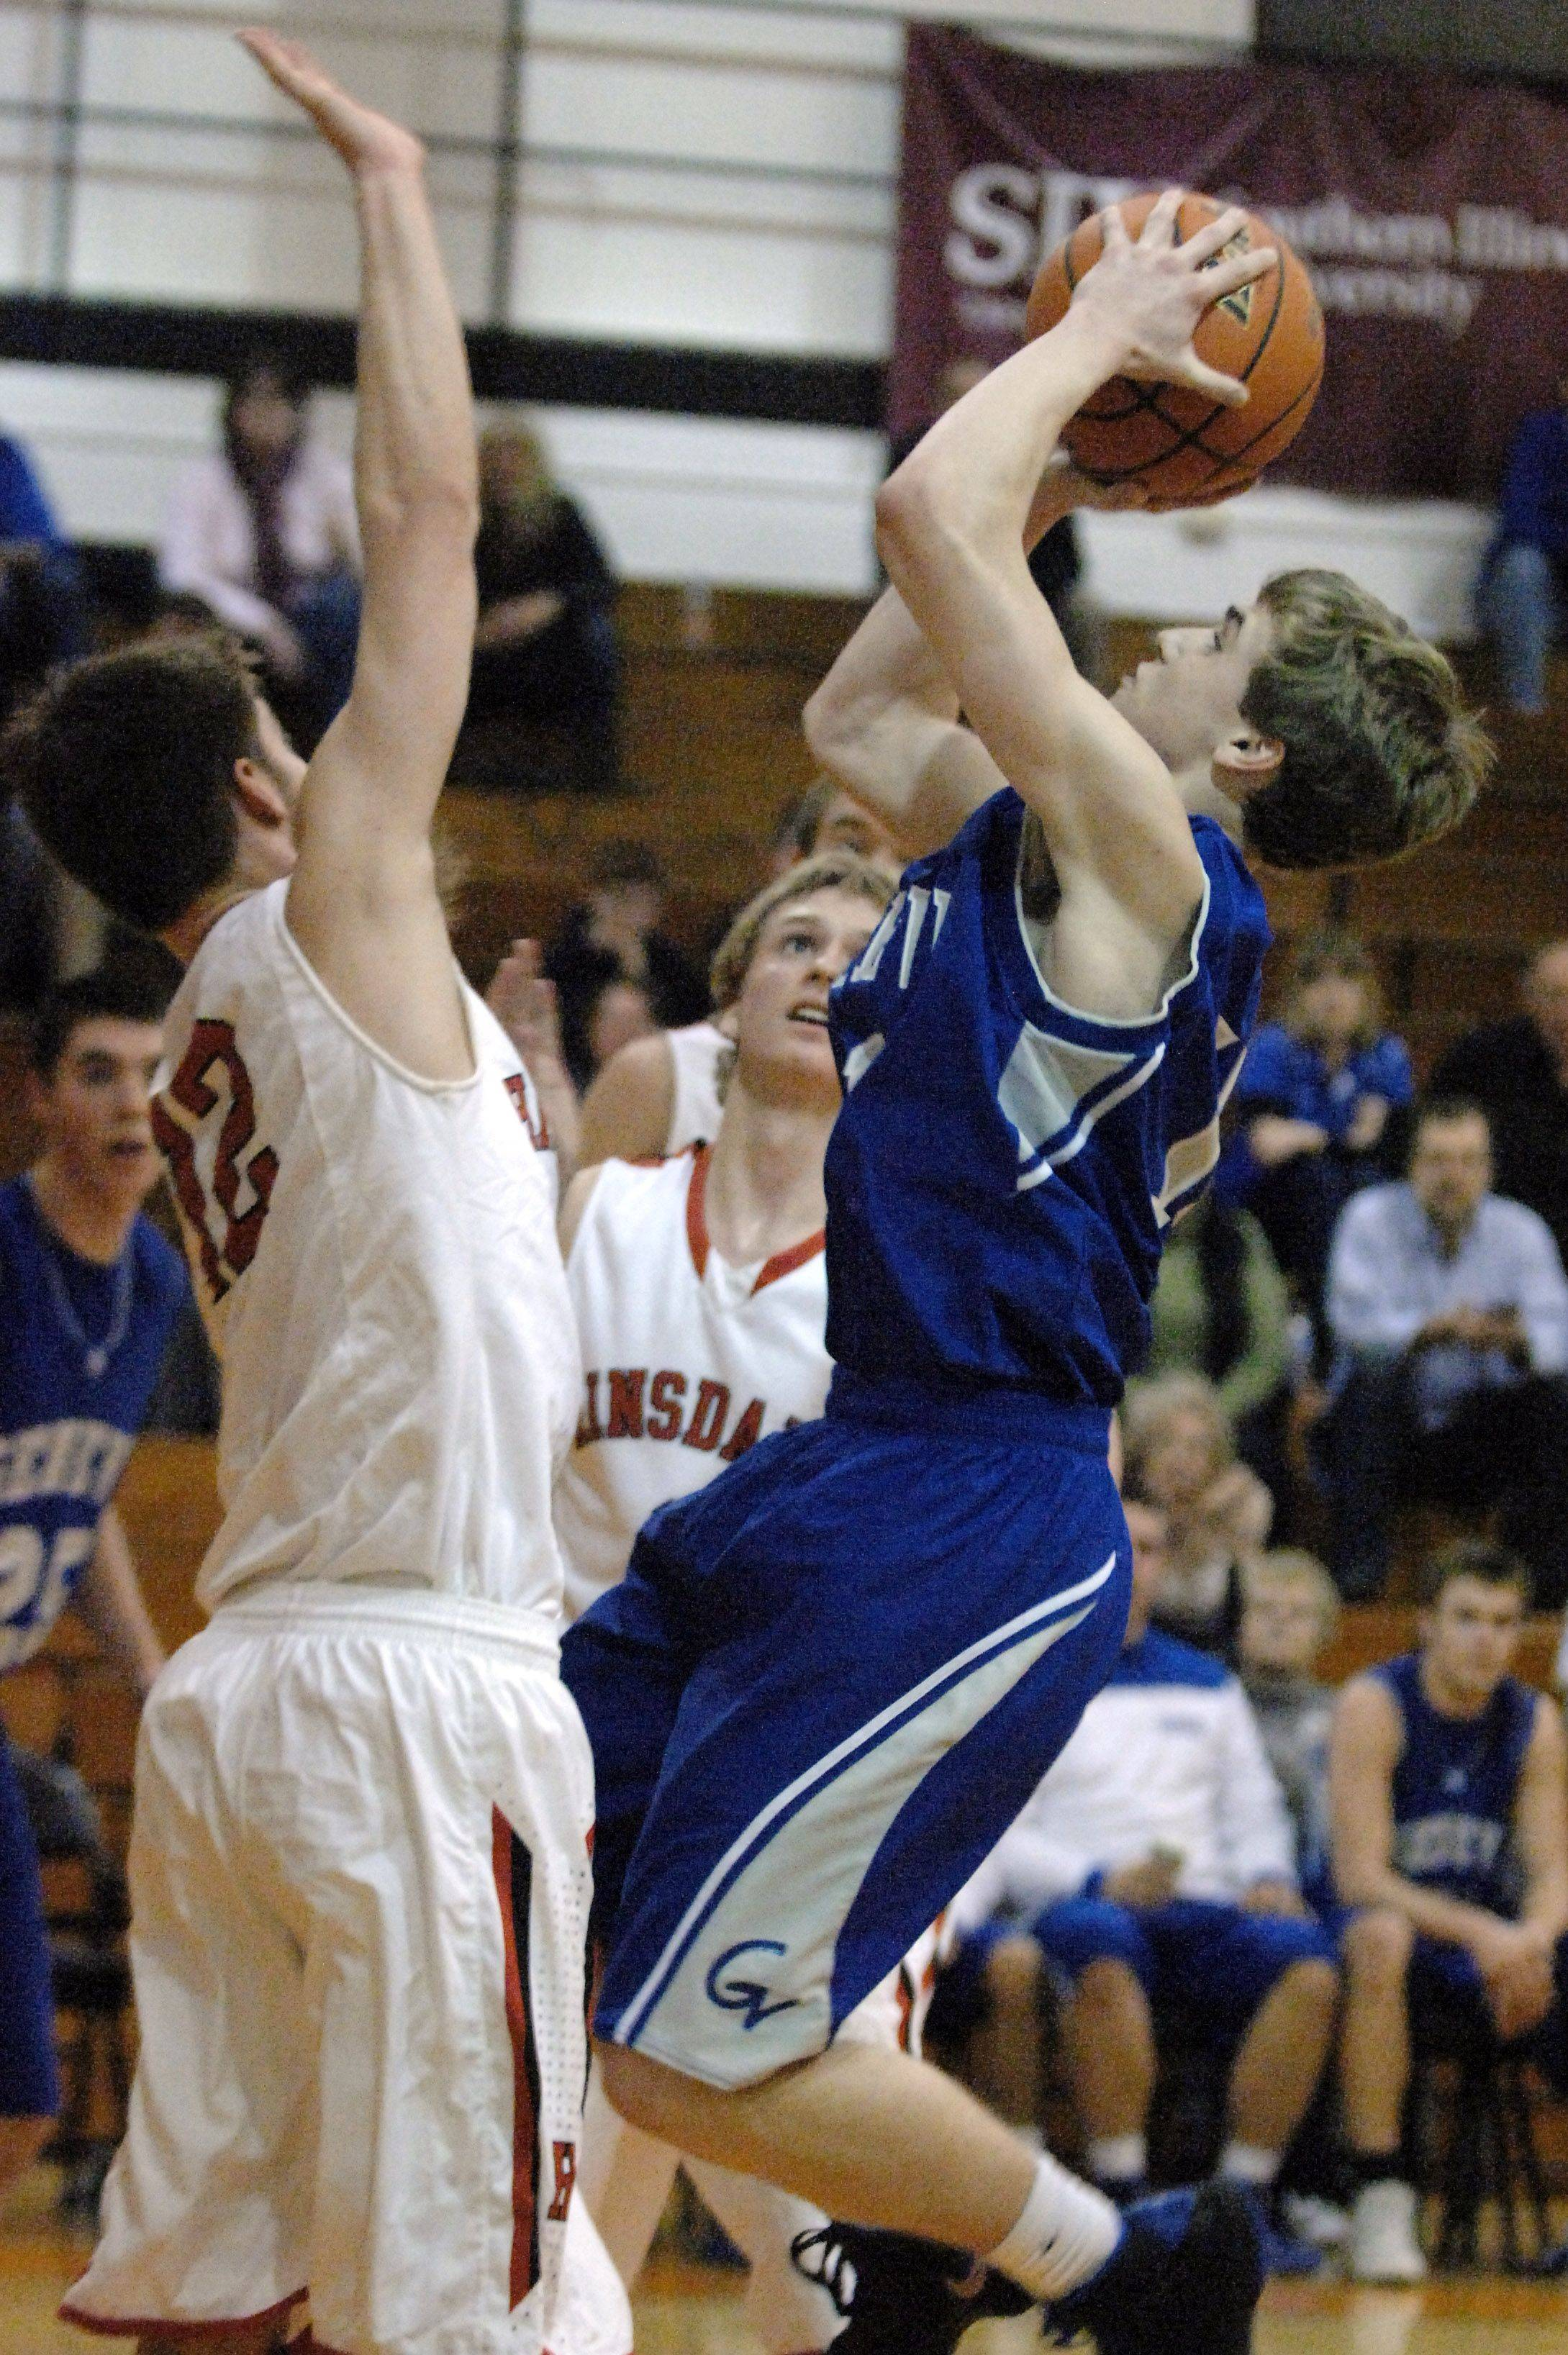 Geneva's Cam Cook scores and is fouled by Hinsdale Central's Matt Rafferty.